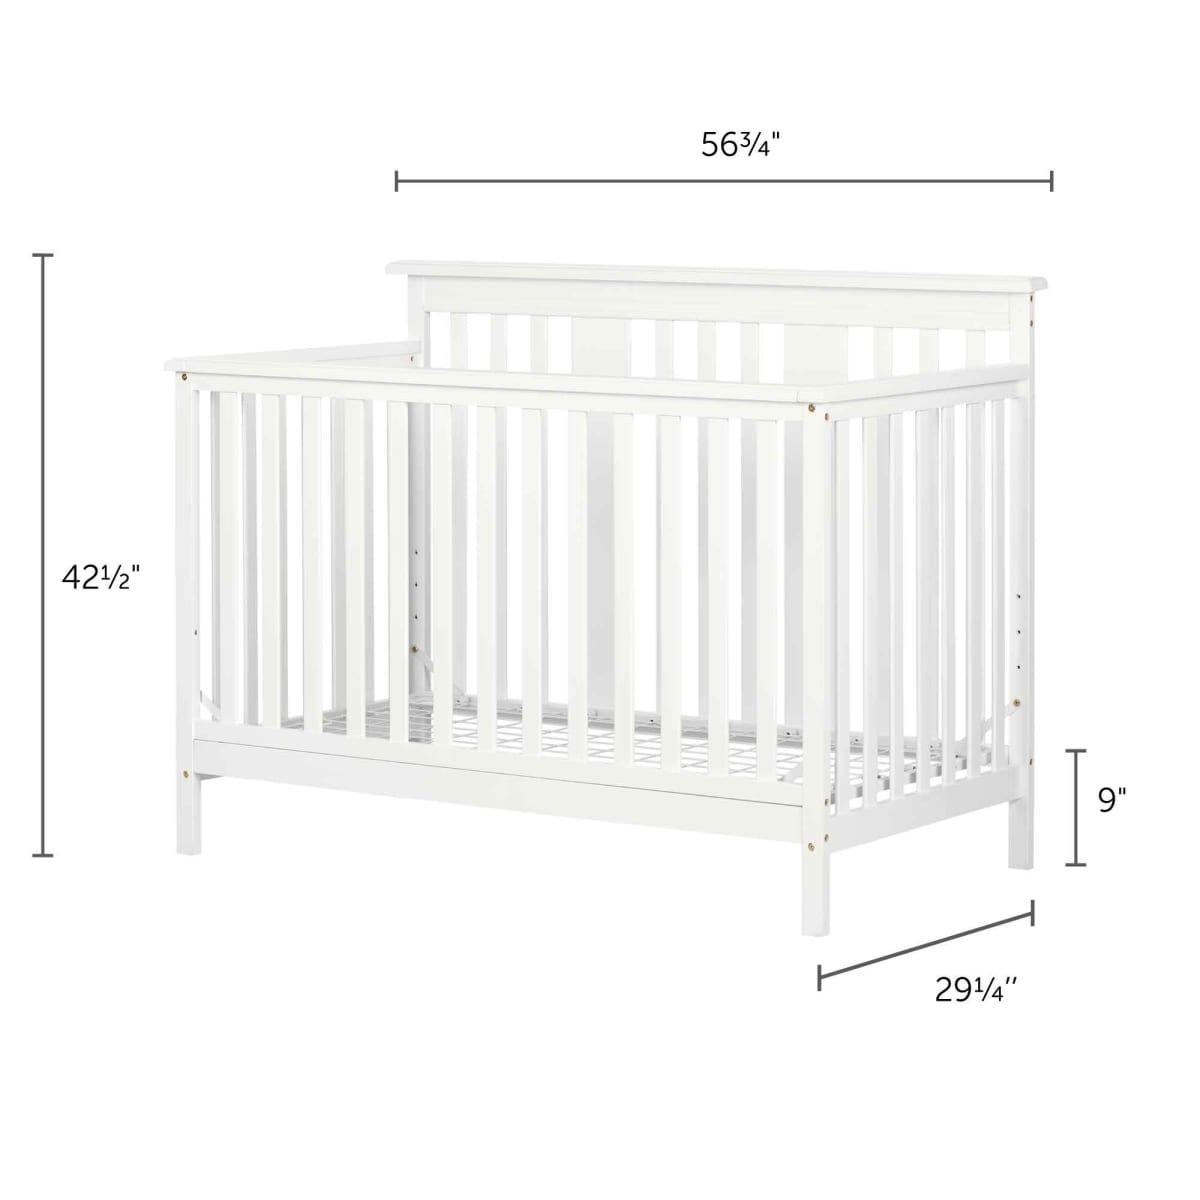 Little Smileys Modern Baby Crib Adjustable Height Mattress With Toddler Rail Crib Nursery Baby And Kids Products South Shore Furniture Us Furniture For Sale Designed And Manufactured In North America